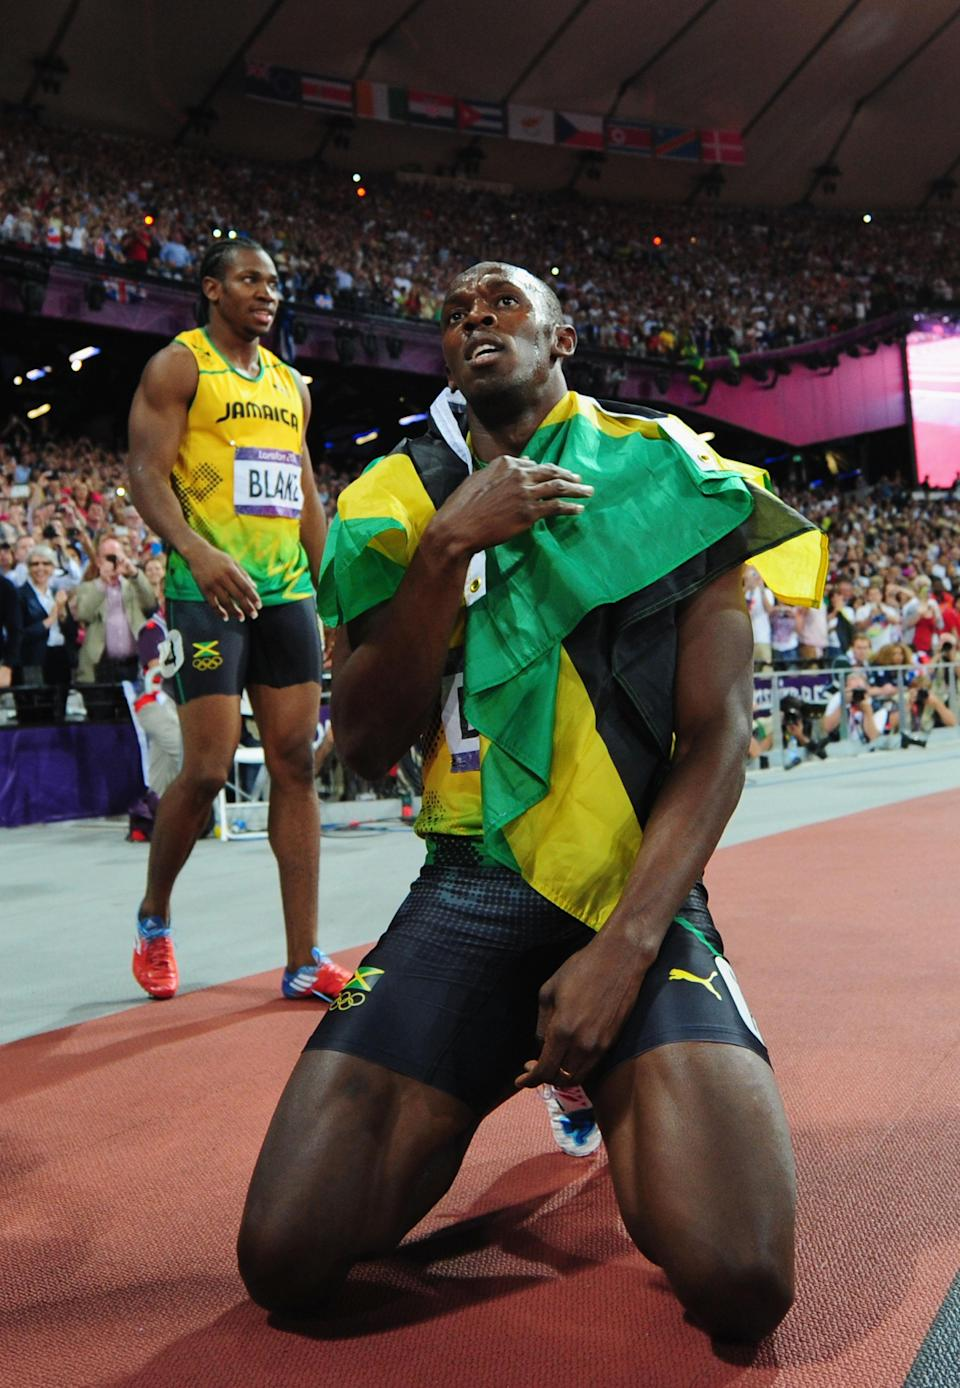 LONDON, ENGLAND - AUGUST 09: Gold medalist Usain Bolt of Jamaica celebrates next to silver medalist Yohan Blake of Jamaica after the Men's 200m Final on Day 13 of the London 2012 Olympic Games at Olympic Stadium on August 9, 2012 in London, England. (Photo by Stu Forster/Getty Images)